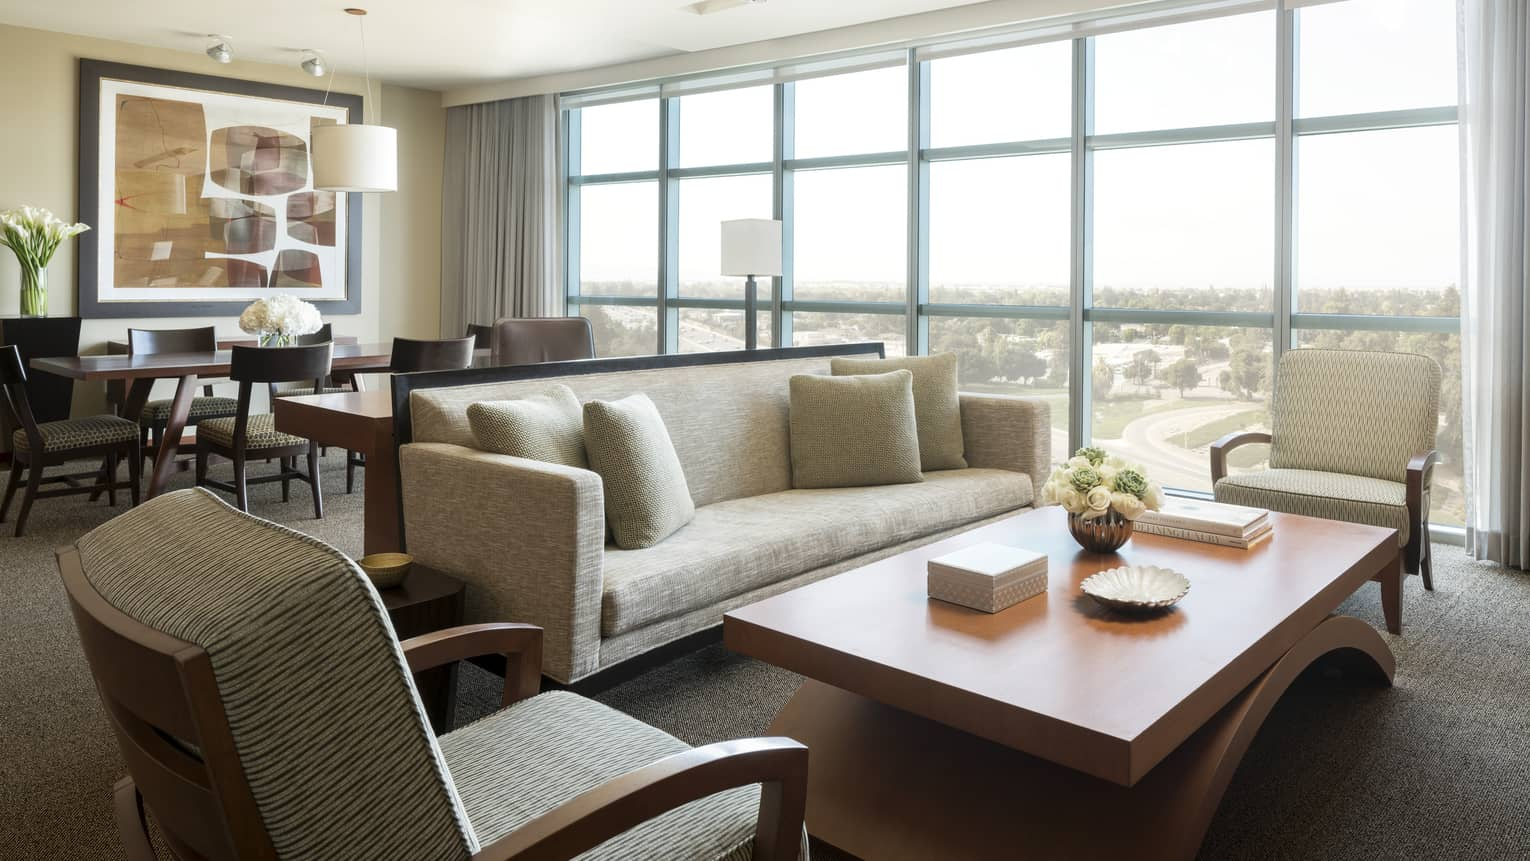 Luxury Suite bright seating area, dining table by floor-to-ceiling windows